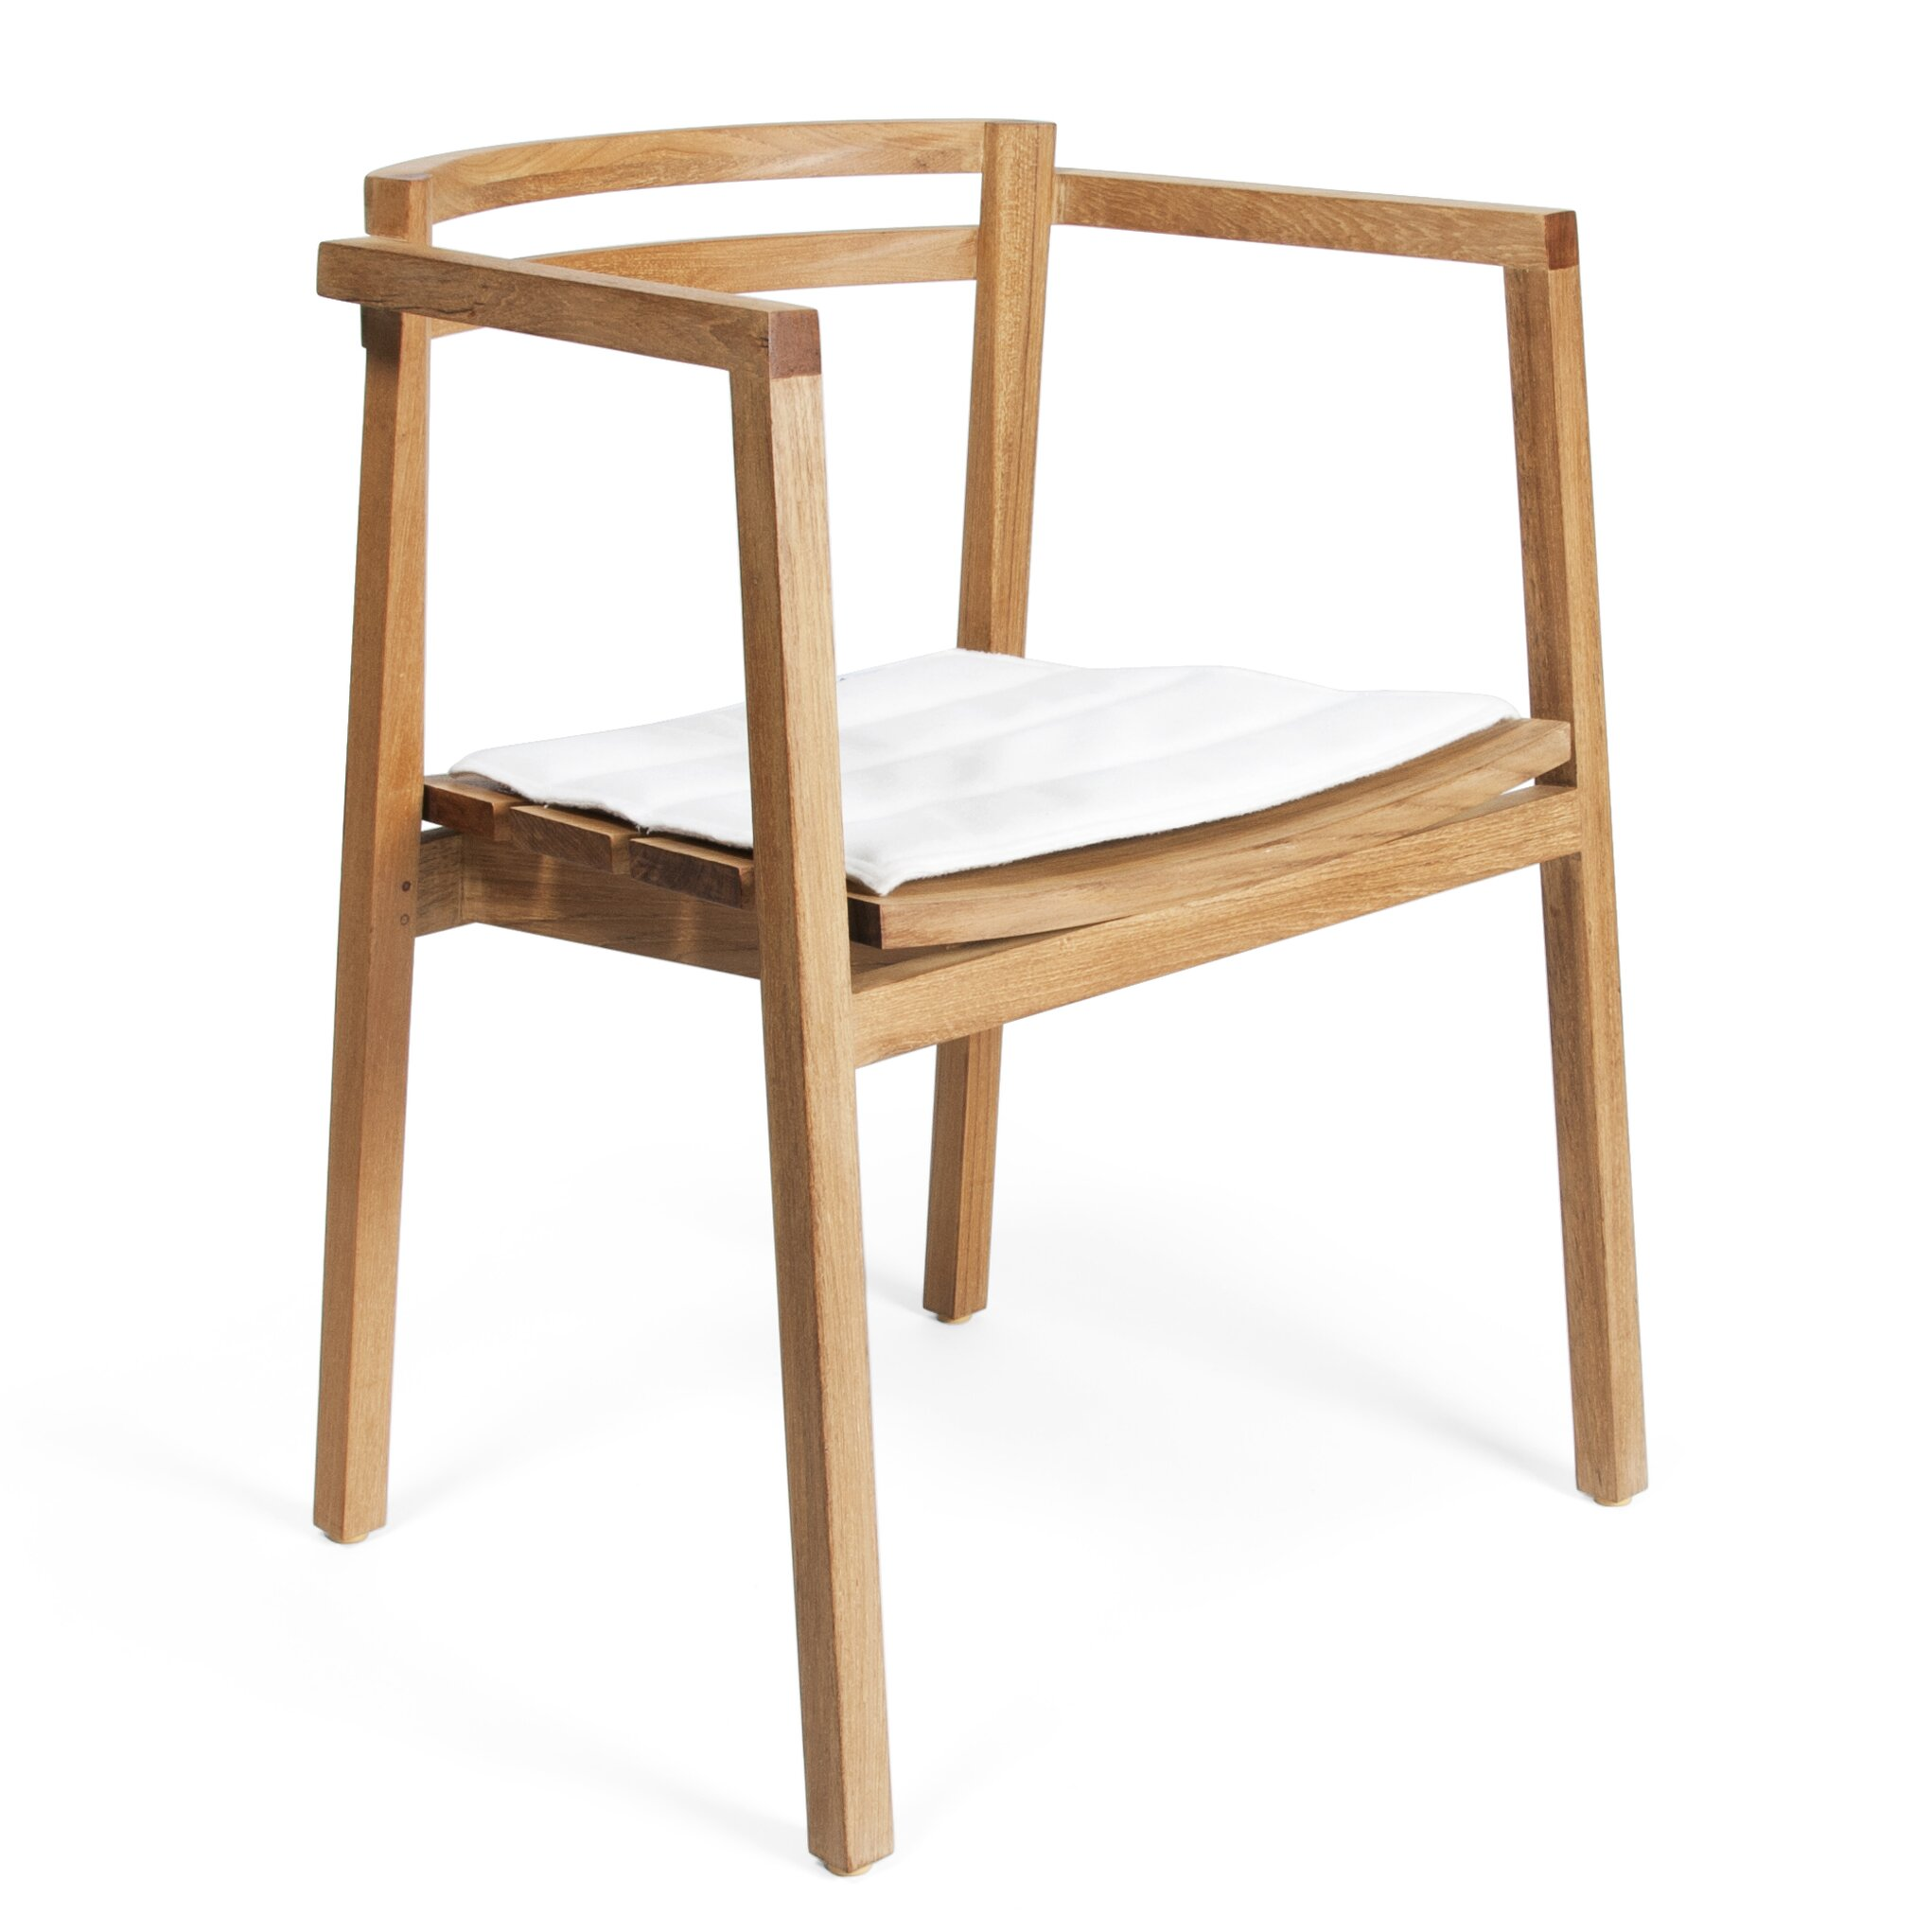 Marvelous photograph of Skargaarden Oxno Dining Arm Chair with Cushion & Reviews Wayfair with #976934 color and 2042x2042 pixels